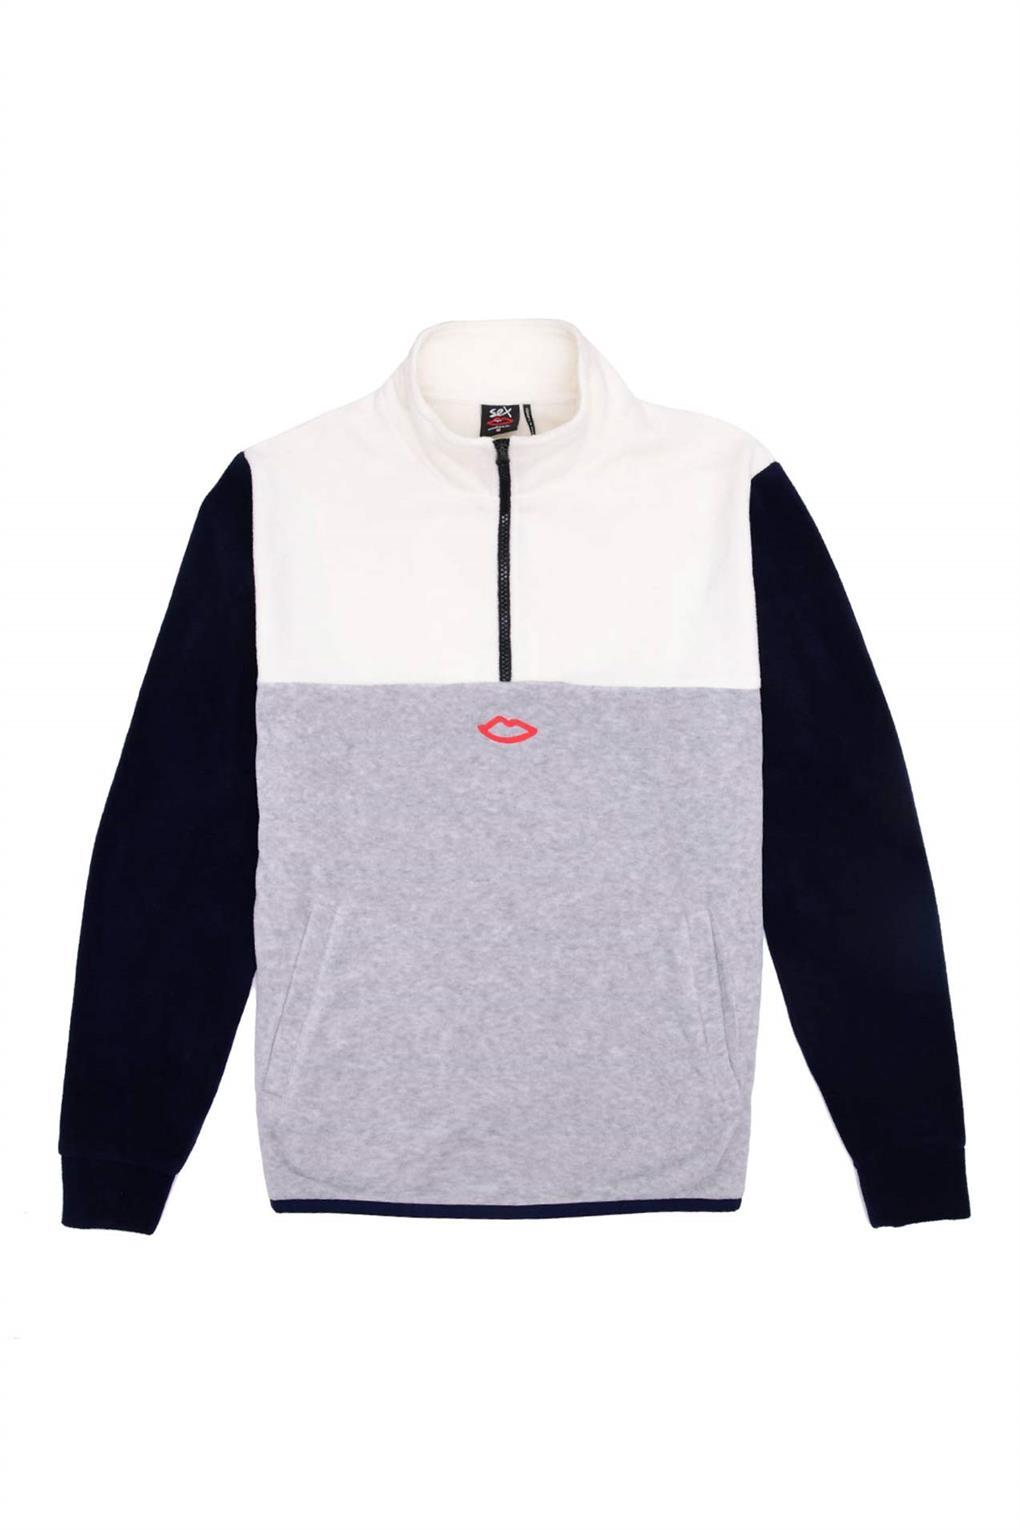 Sex Skateboards 3 Way Quarter Zip Fleece - Off White/Navy/Grey